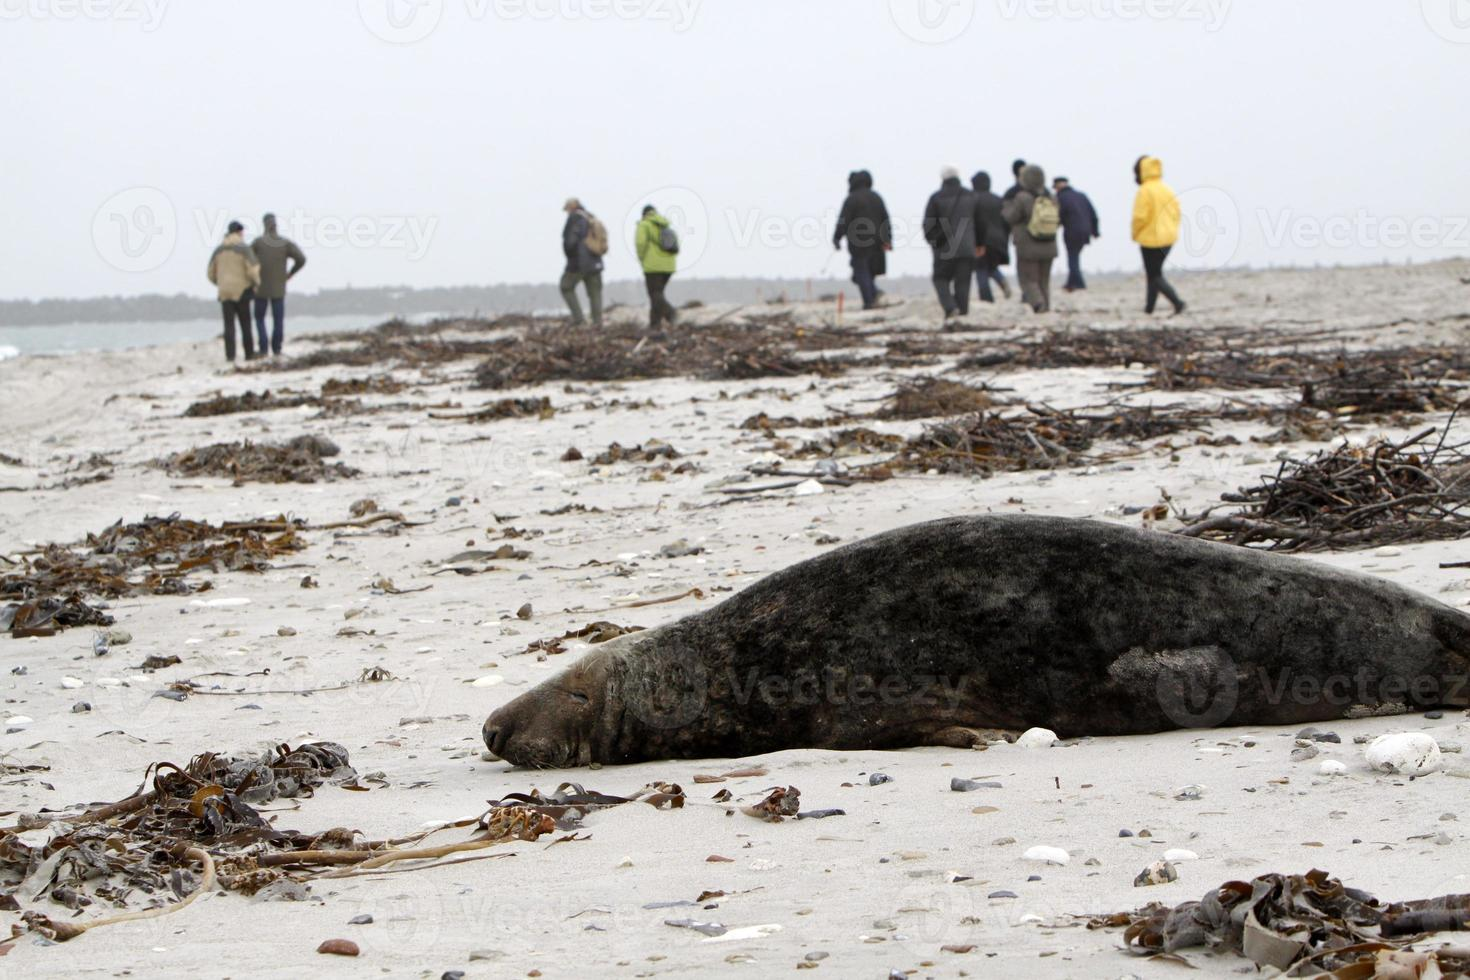 Meeting people and the gray seal photo